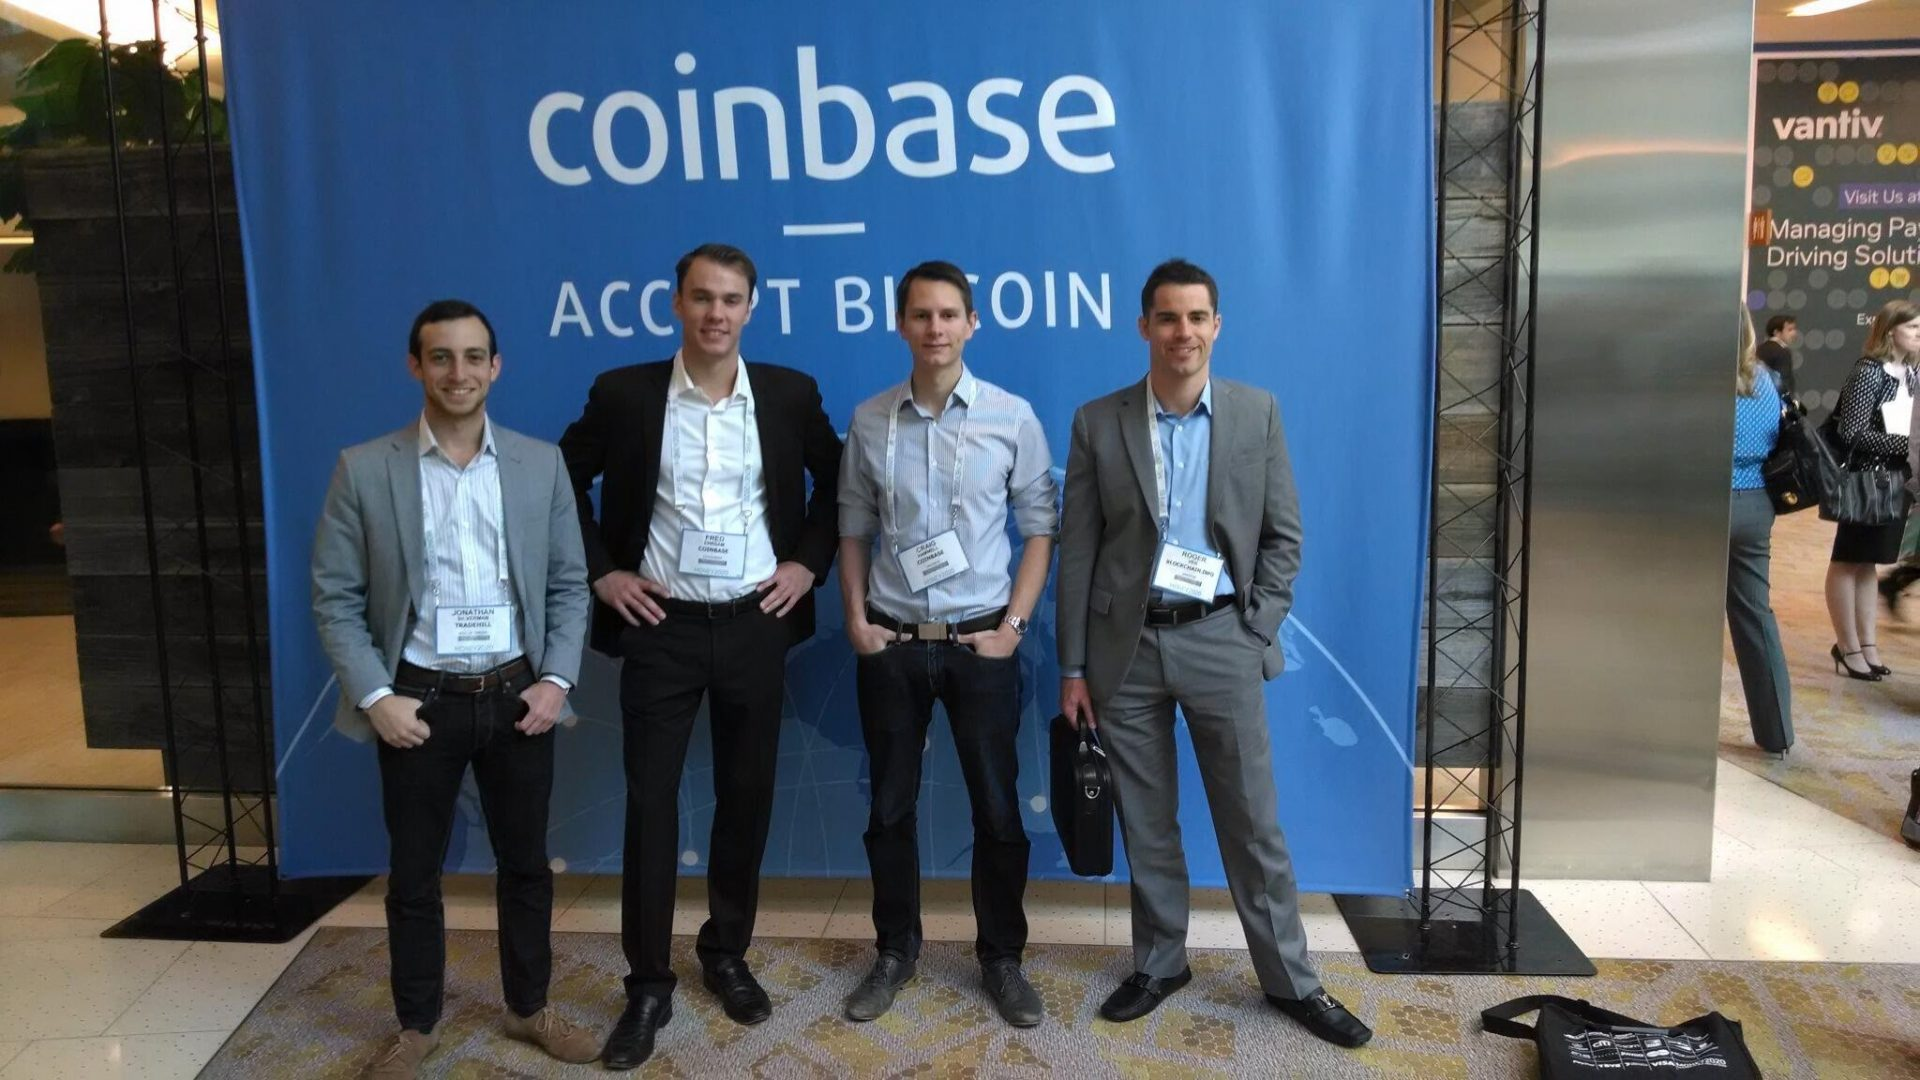 Bitcoin Company Coinbase is Hiring Like Crazy!